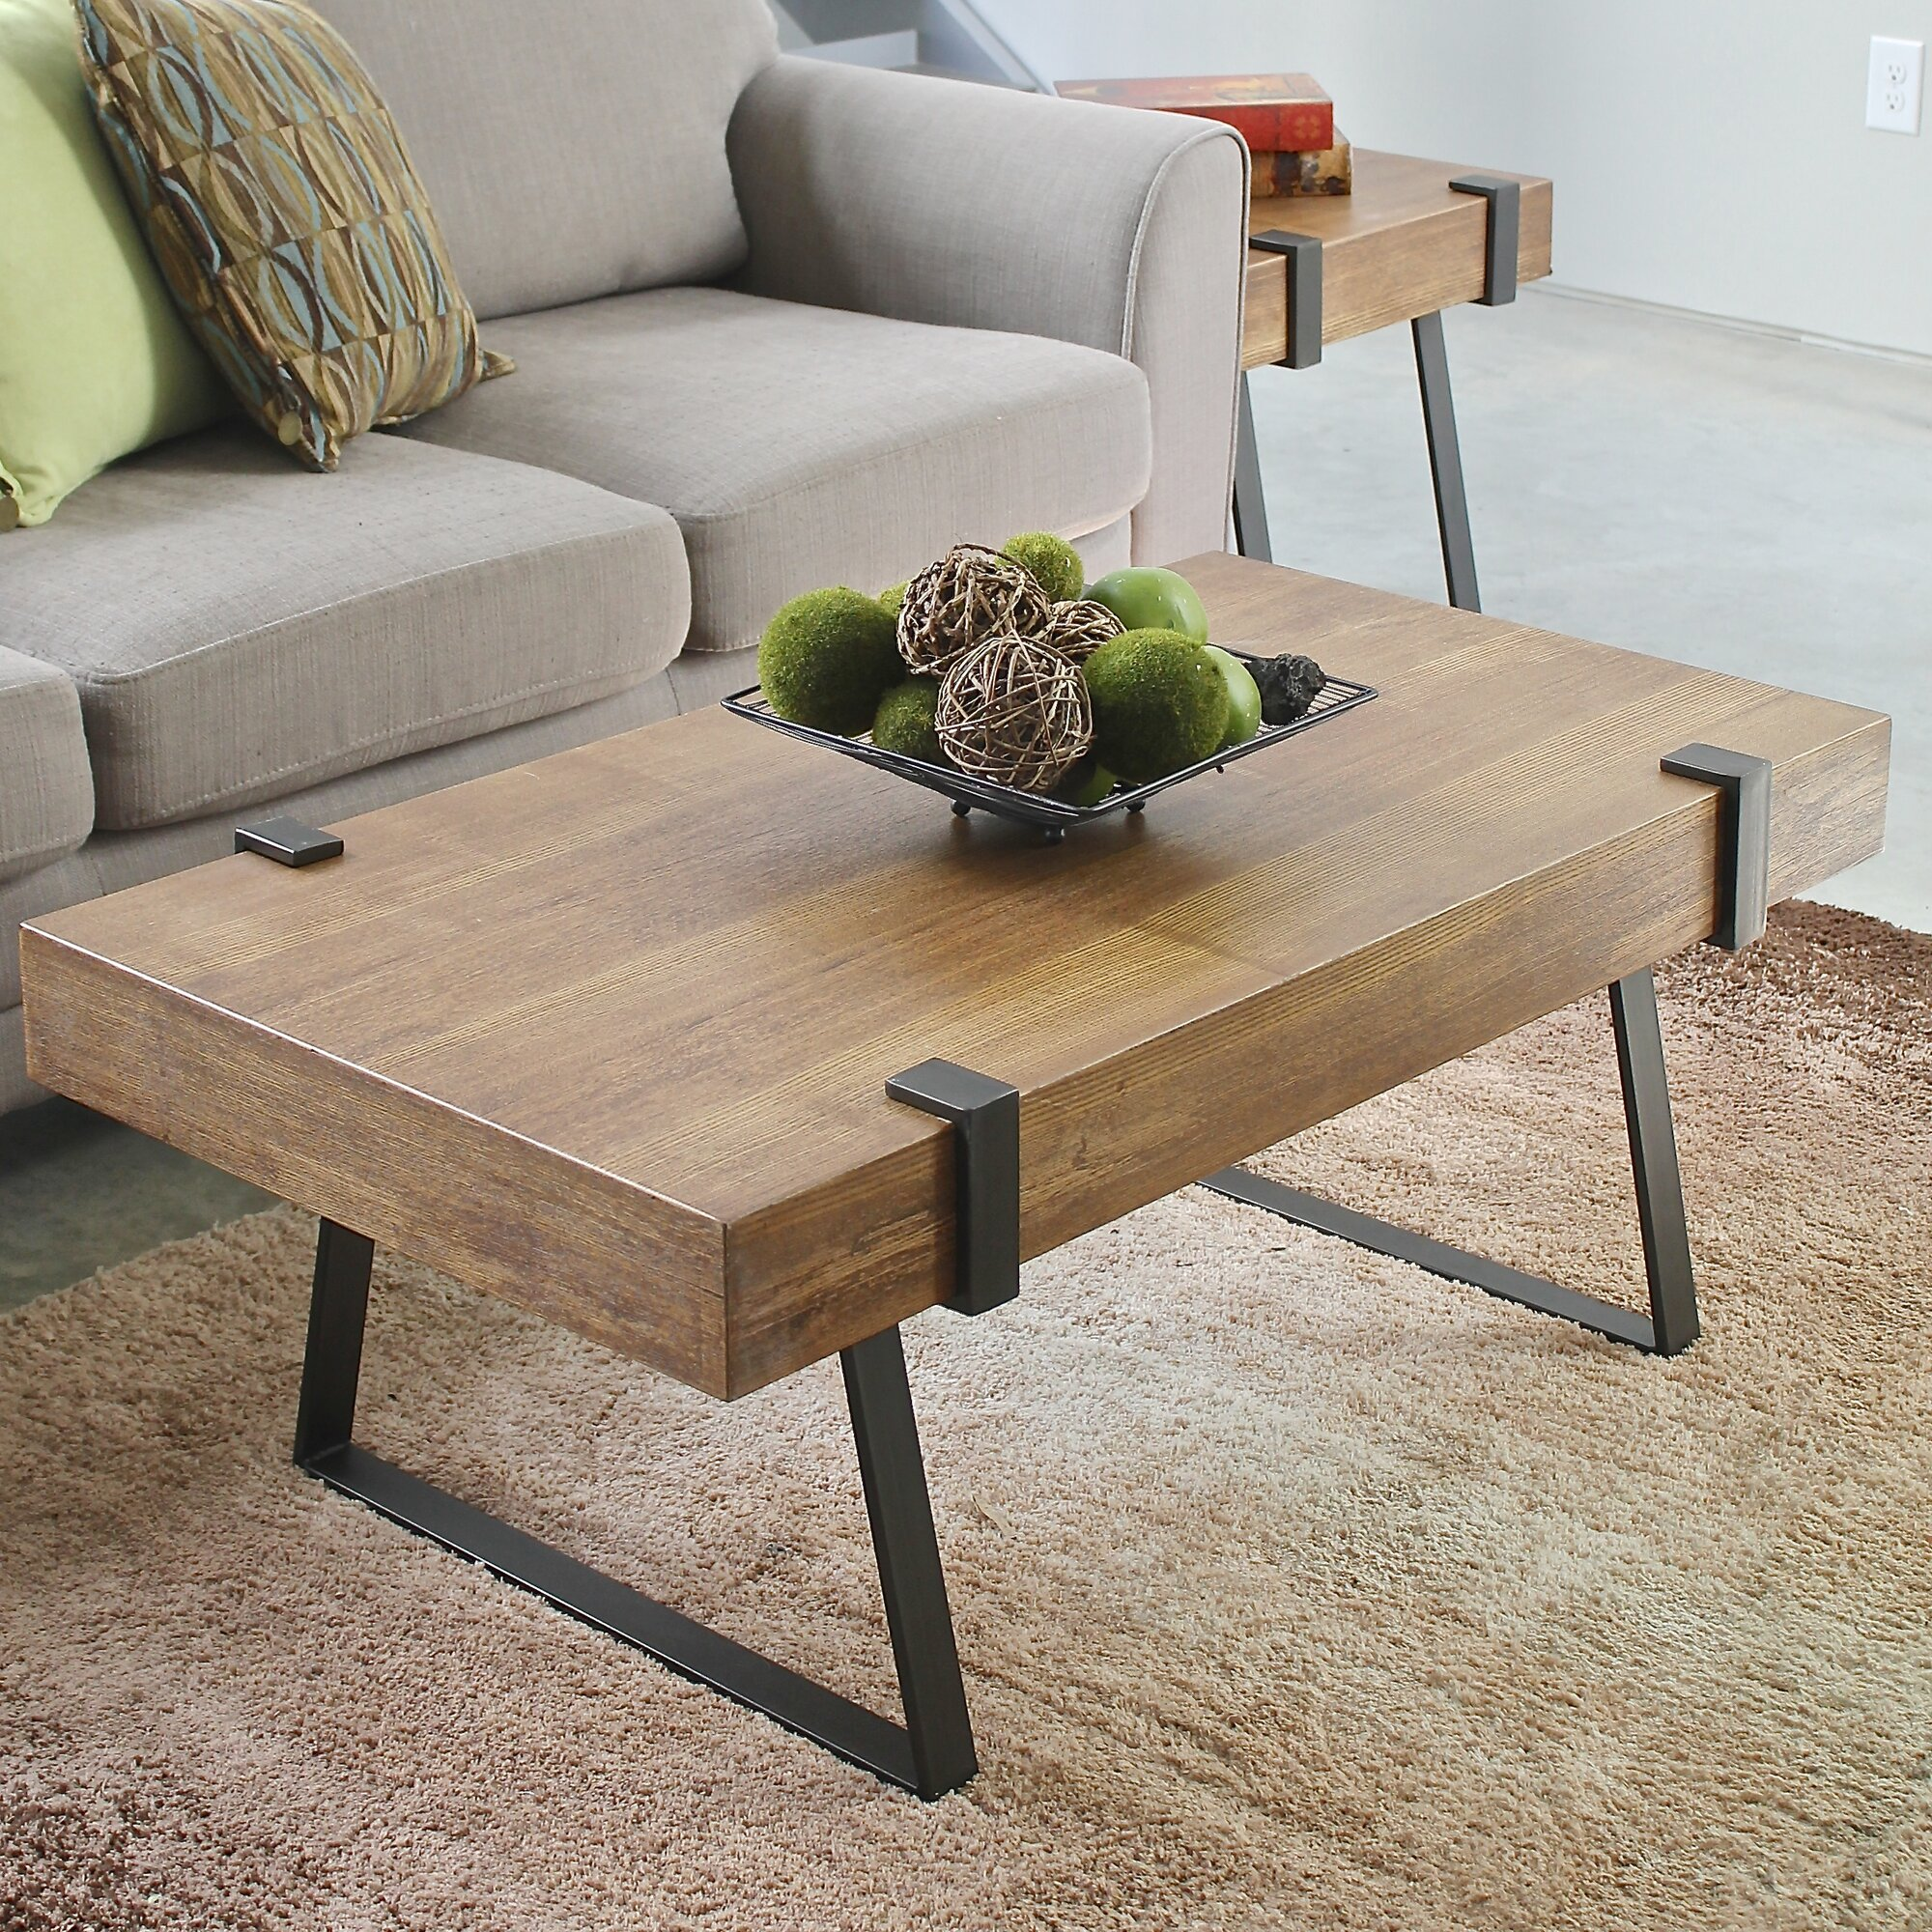 Laurel Foundry Modern Farmhouse Wisteria Indoor Coffee Table Reviews Wayfair